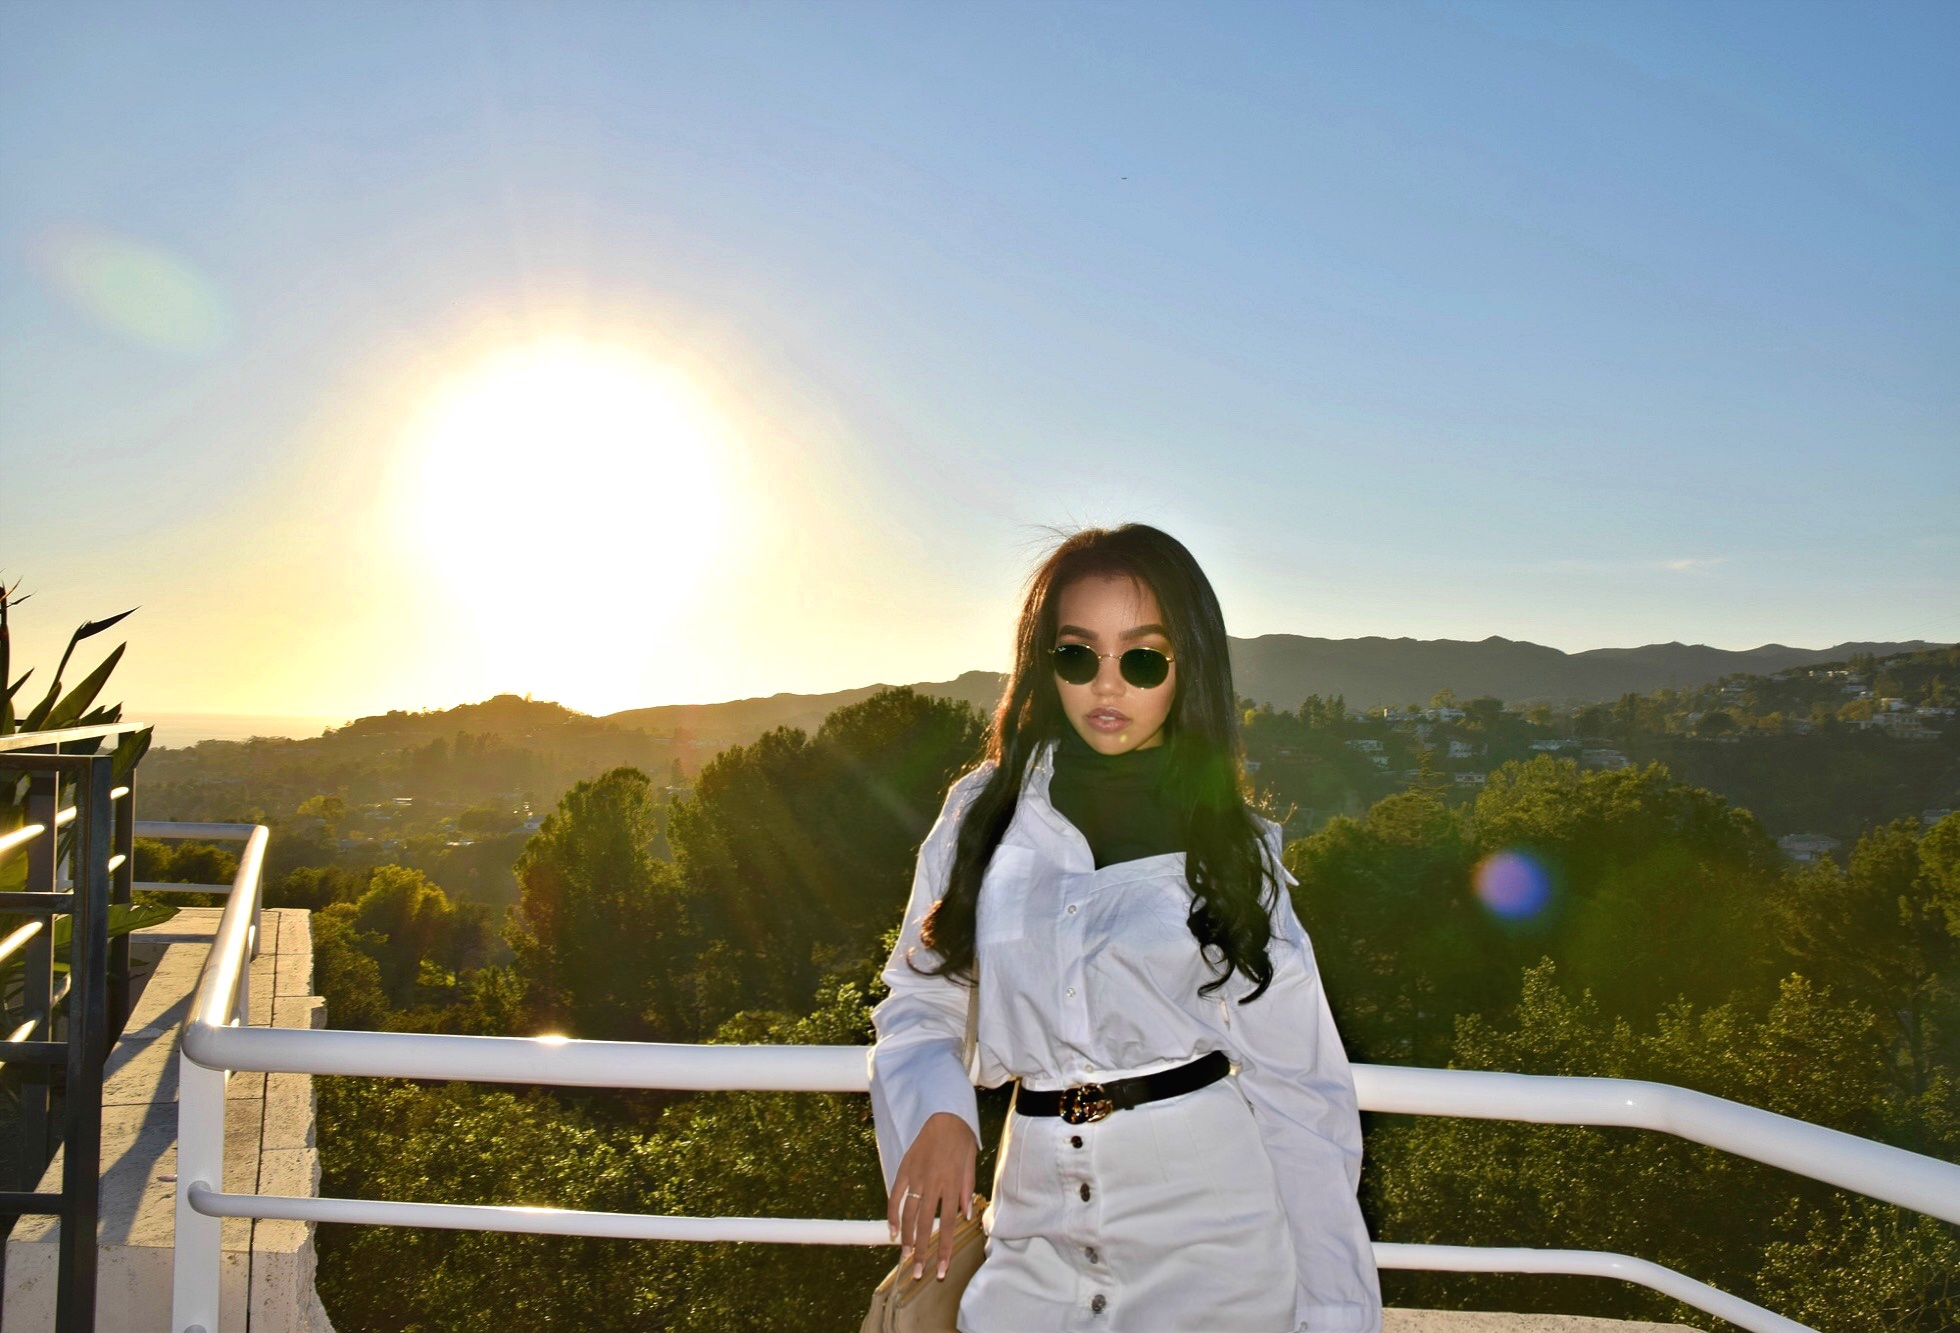 The Getty // Los Angeles California // Storets Off The Shoulder Button Up Blouse // T by Alexander Wang White Denim Skirt // Gucci GG Classic Marmont Belt // Gucci Gold Loafers // Celine Trio Nude Crossbody Bag // Round Ray Ban Sunglasses // Los Angeles Fashion Blogger Daphne Blunt: To Style, With Love